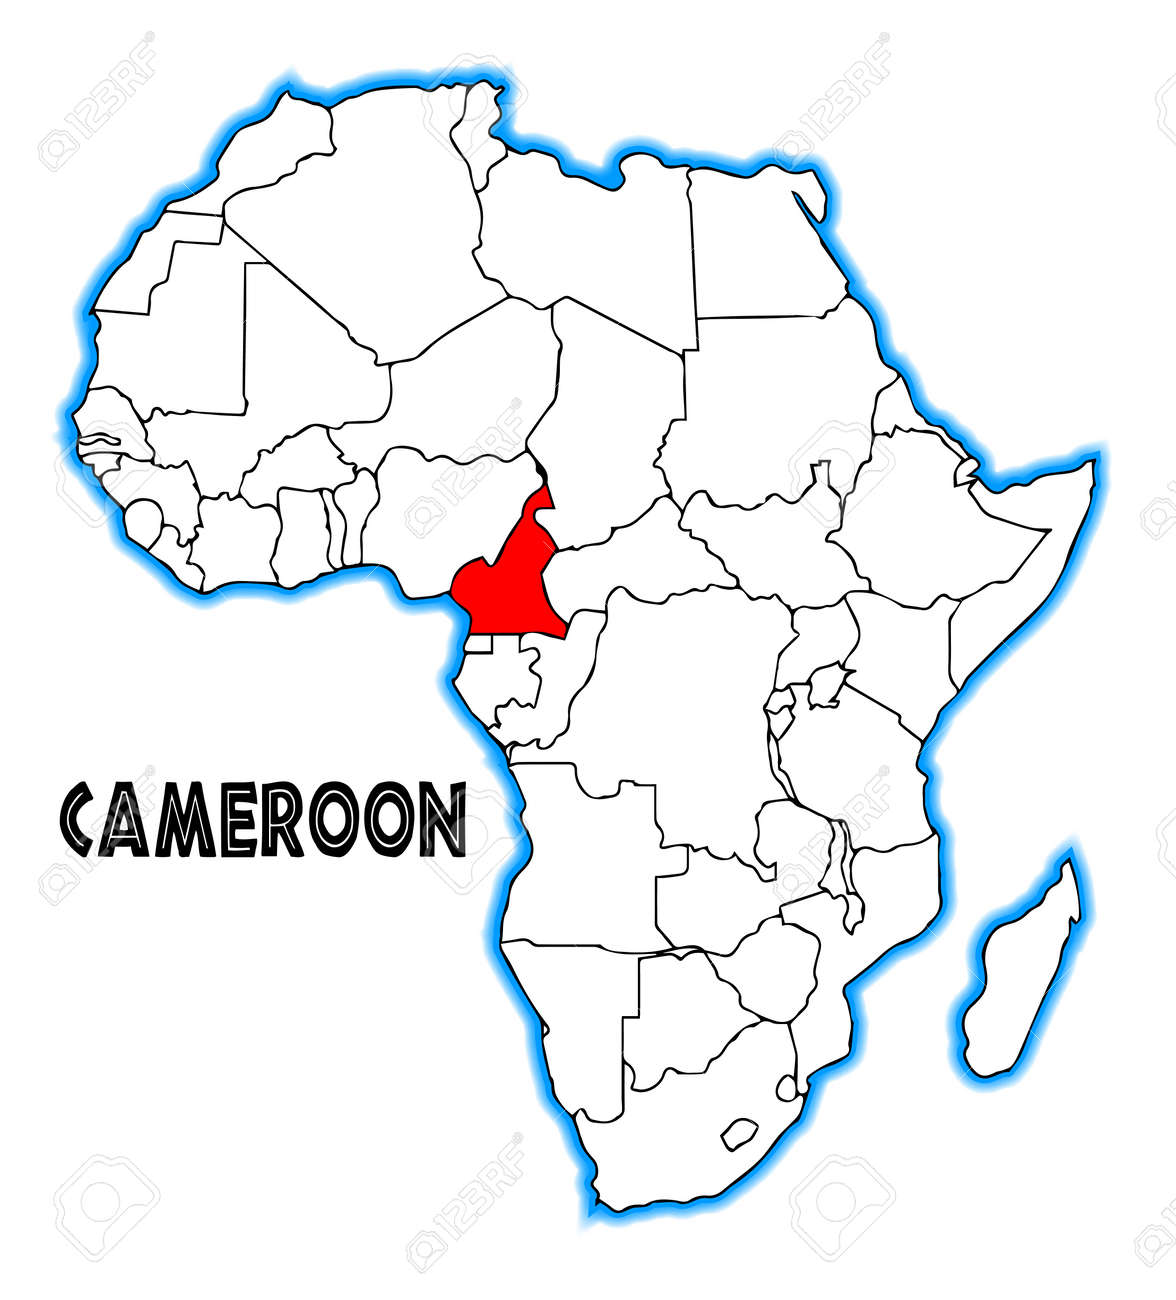 Map Of Africa Cameroon.Cameroon Outline Inset Into A Map Of Africa Over A White Background